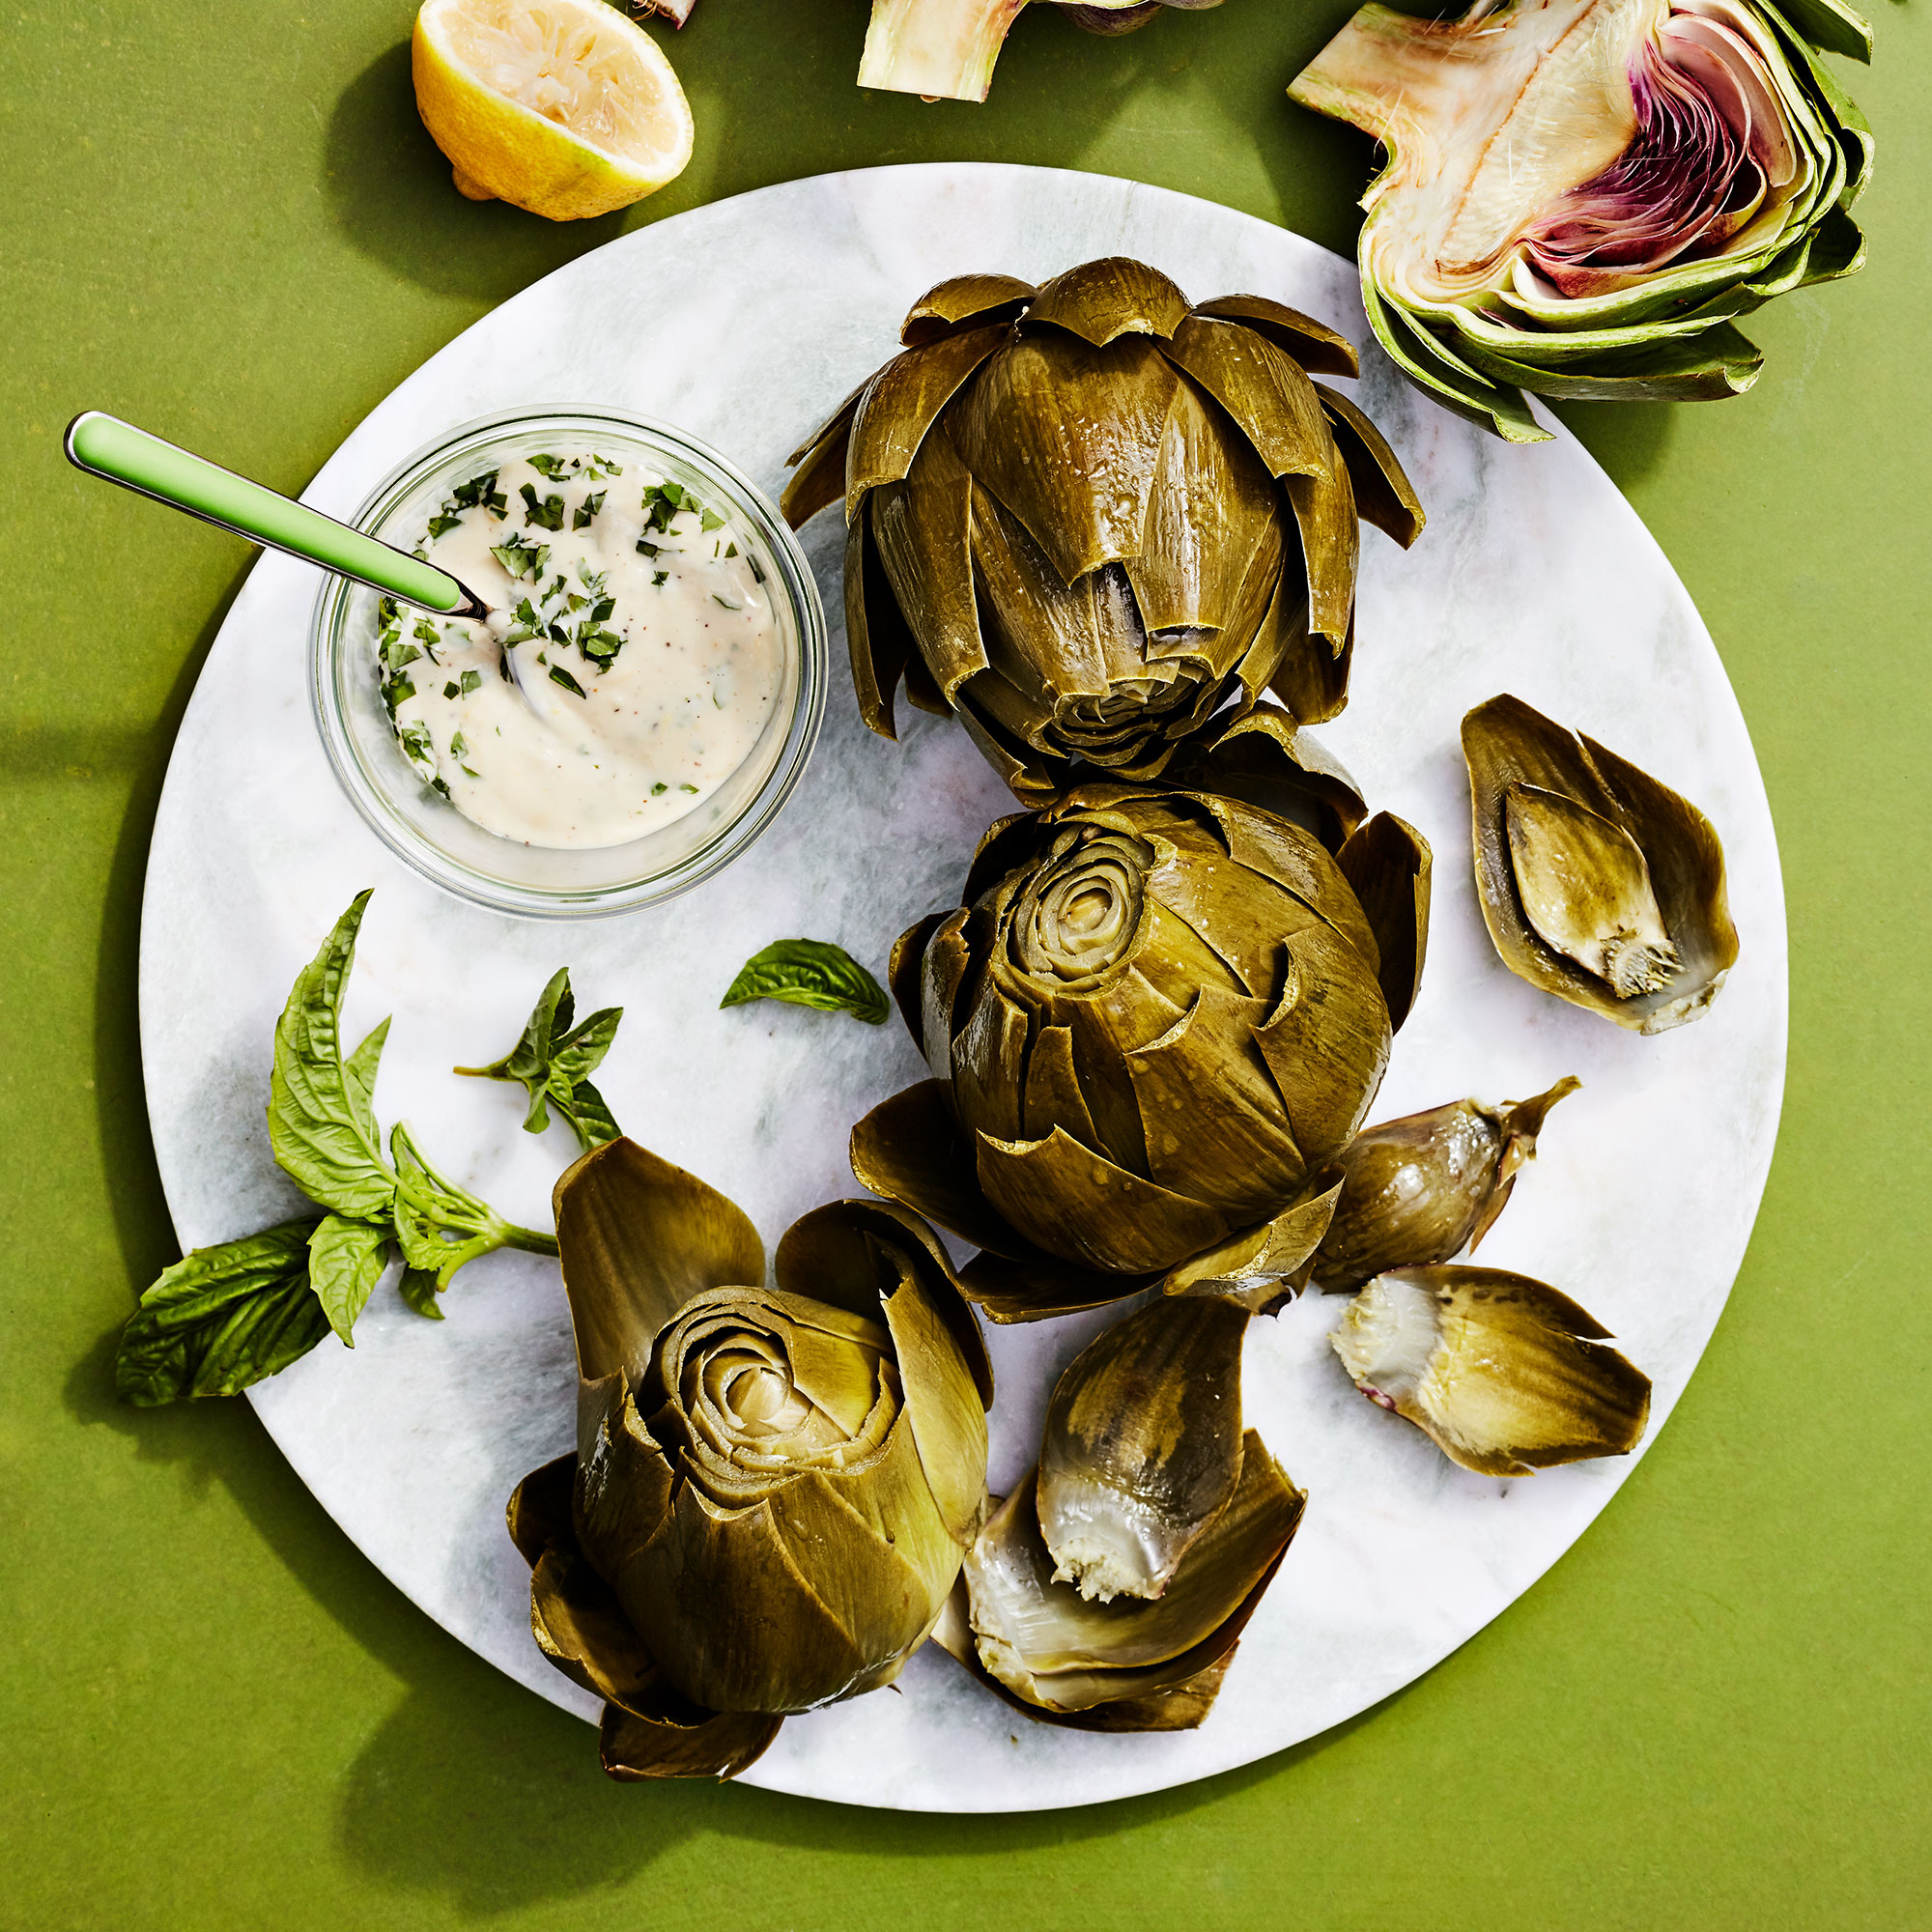 Steamed Artichokes with Lemon-Basil Aioli